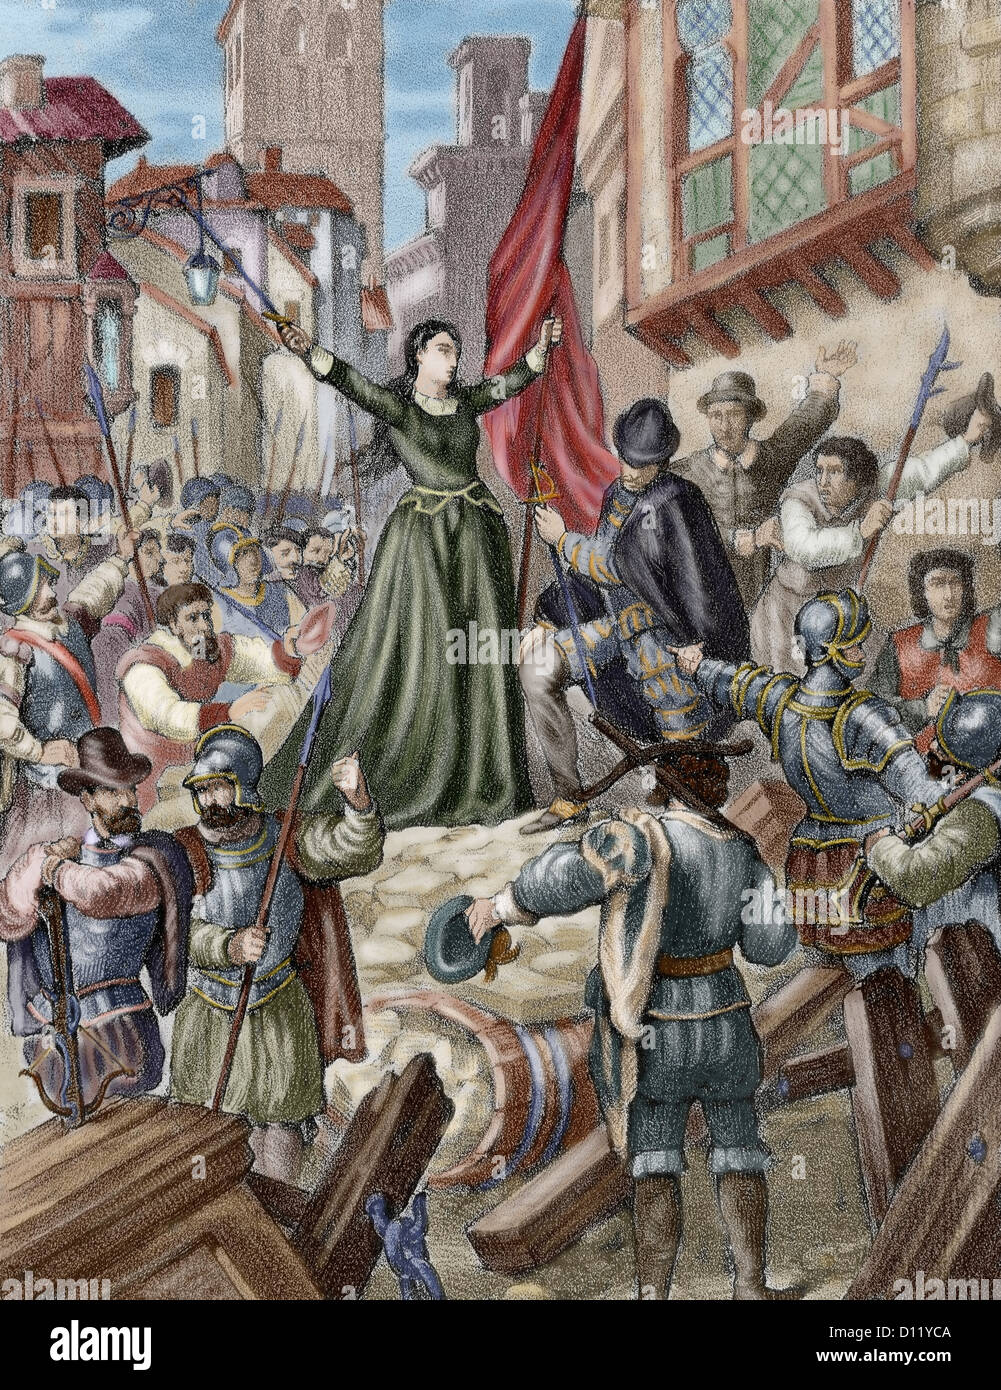 Revolt of the Comuneros (1550-1521). Maria Pacheco (1496-1531) against the  royalist forces.